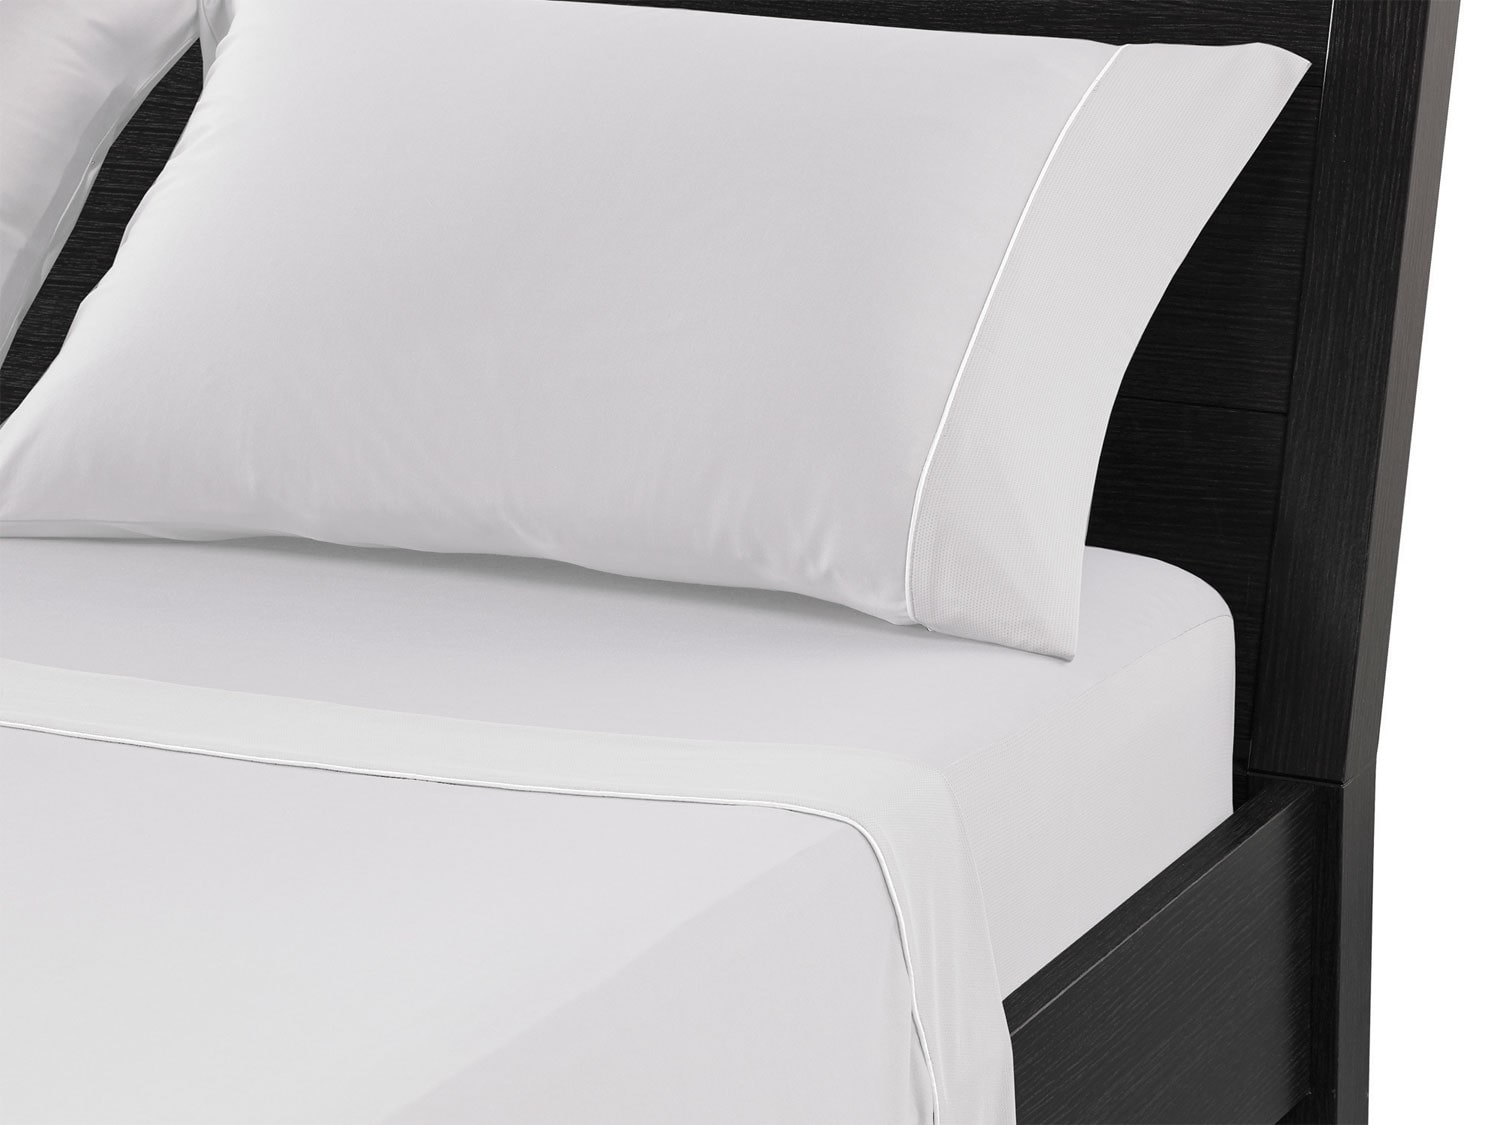 Mattresses and Bedding - Bedgear™ Dri-Tec® Queen Sheet Set – White